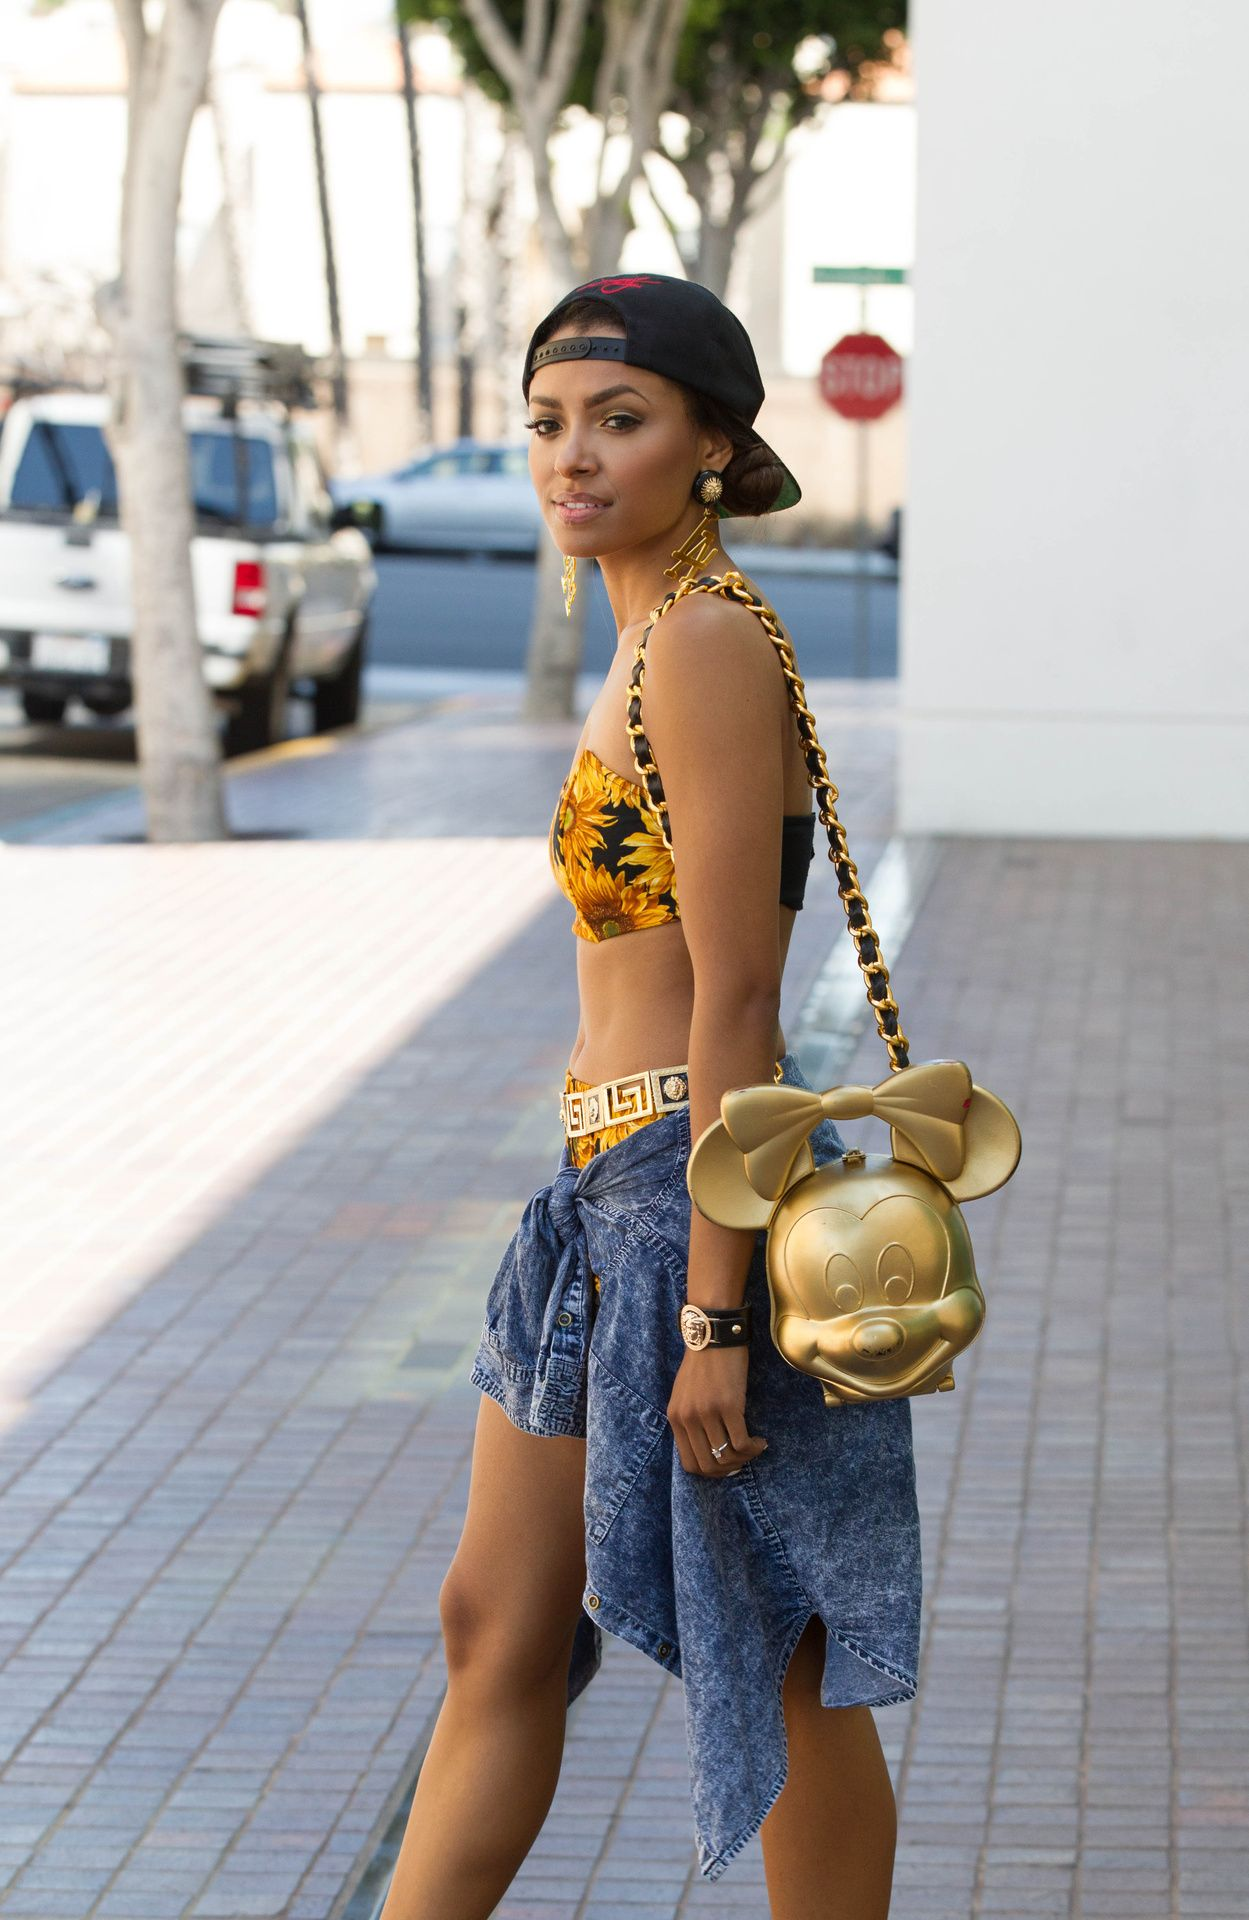 Urban Grunge Kat Graham Minnie Mouse Golden Bag Outfit Fashion Street Style Inspiration